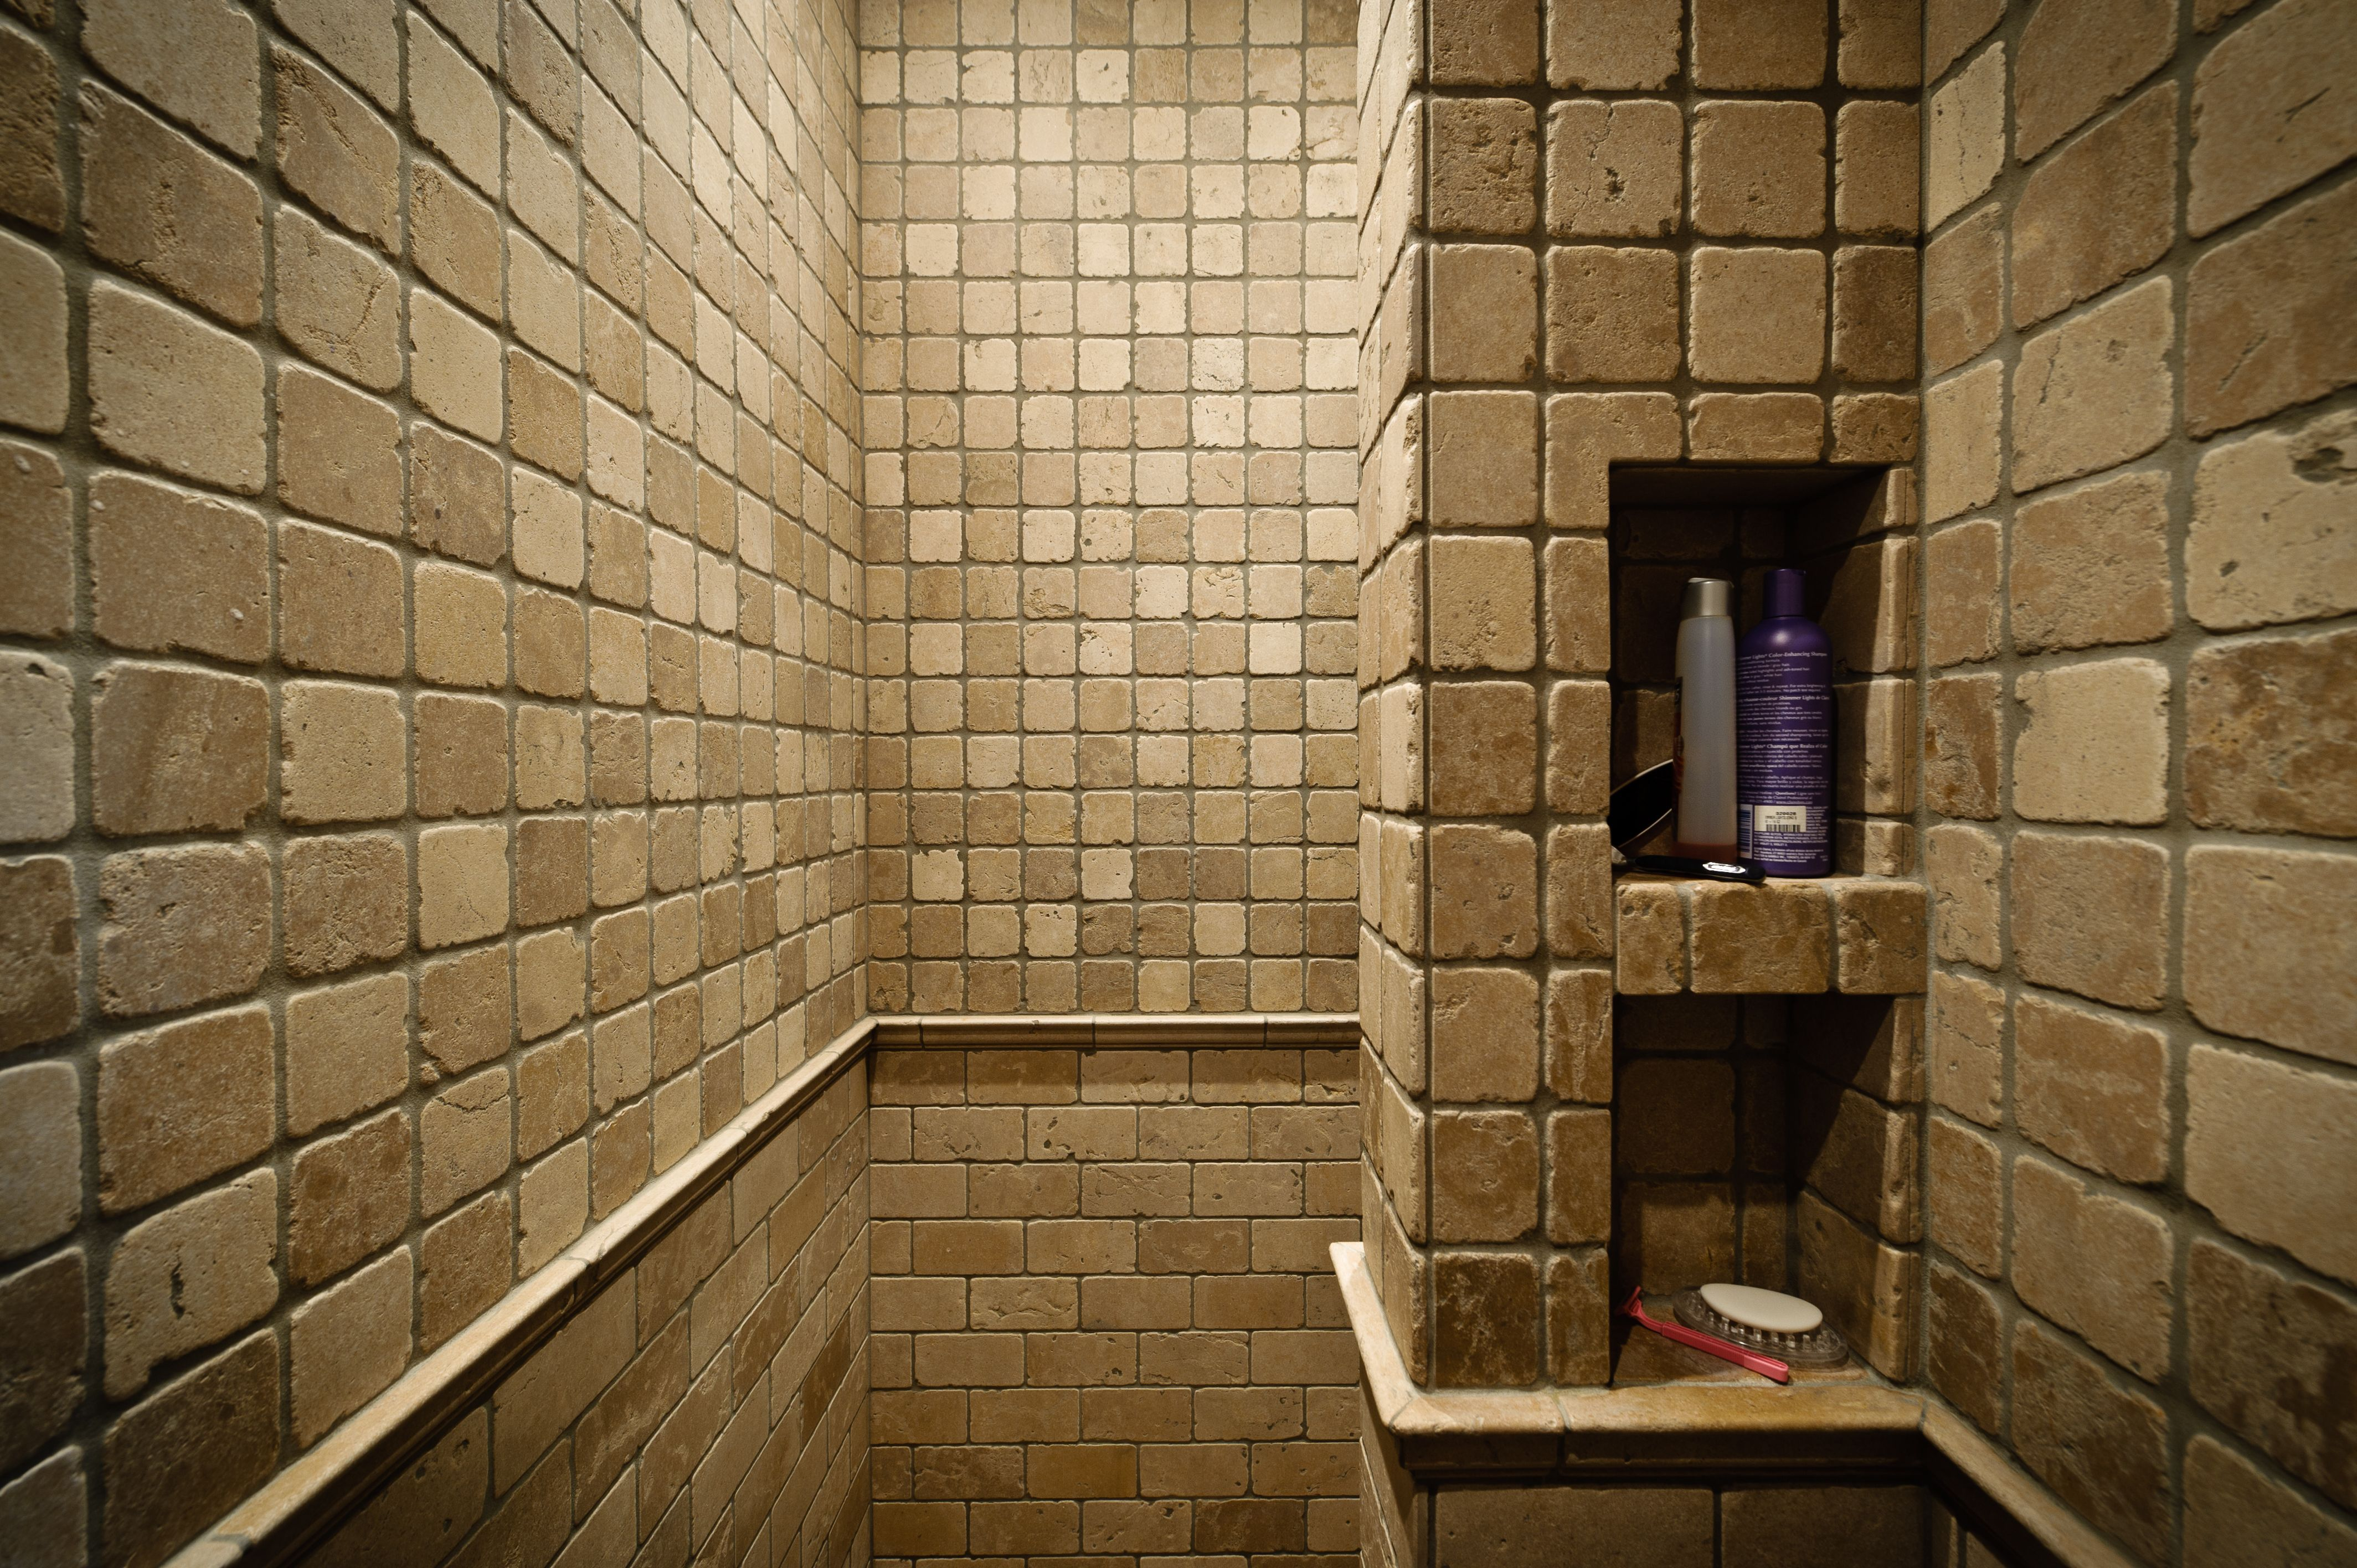 Cool 12X12 Floor Tiles Thin 2 X 6 Glass Subway Tile Flat 24X24 Floor Tile 3X6 Beveled Subway Tile Youthful 4 1 4 X 4 1 4 Ceramic Tile Gray4 X 12 White Ceramic Subway Tile A Tumbled 3x6 Travertine For A Classic Subway Feel. On Display ..